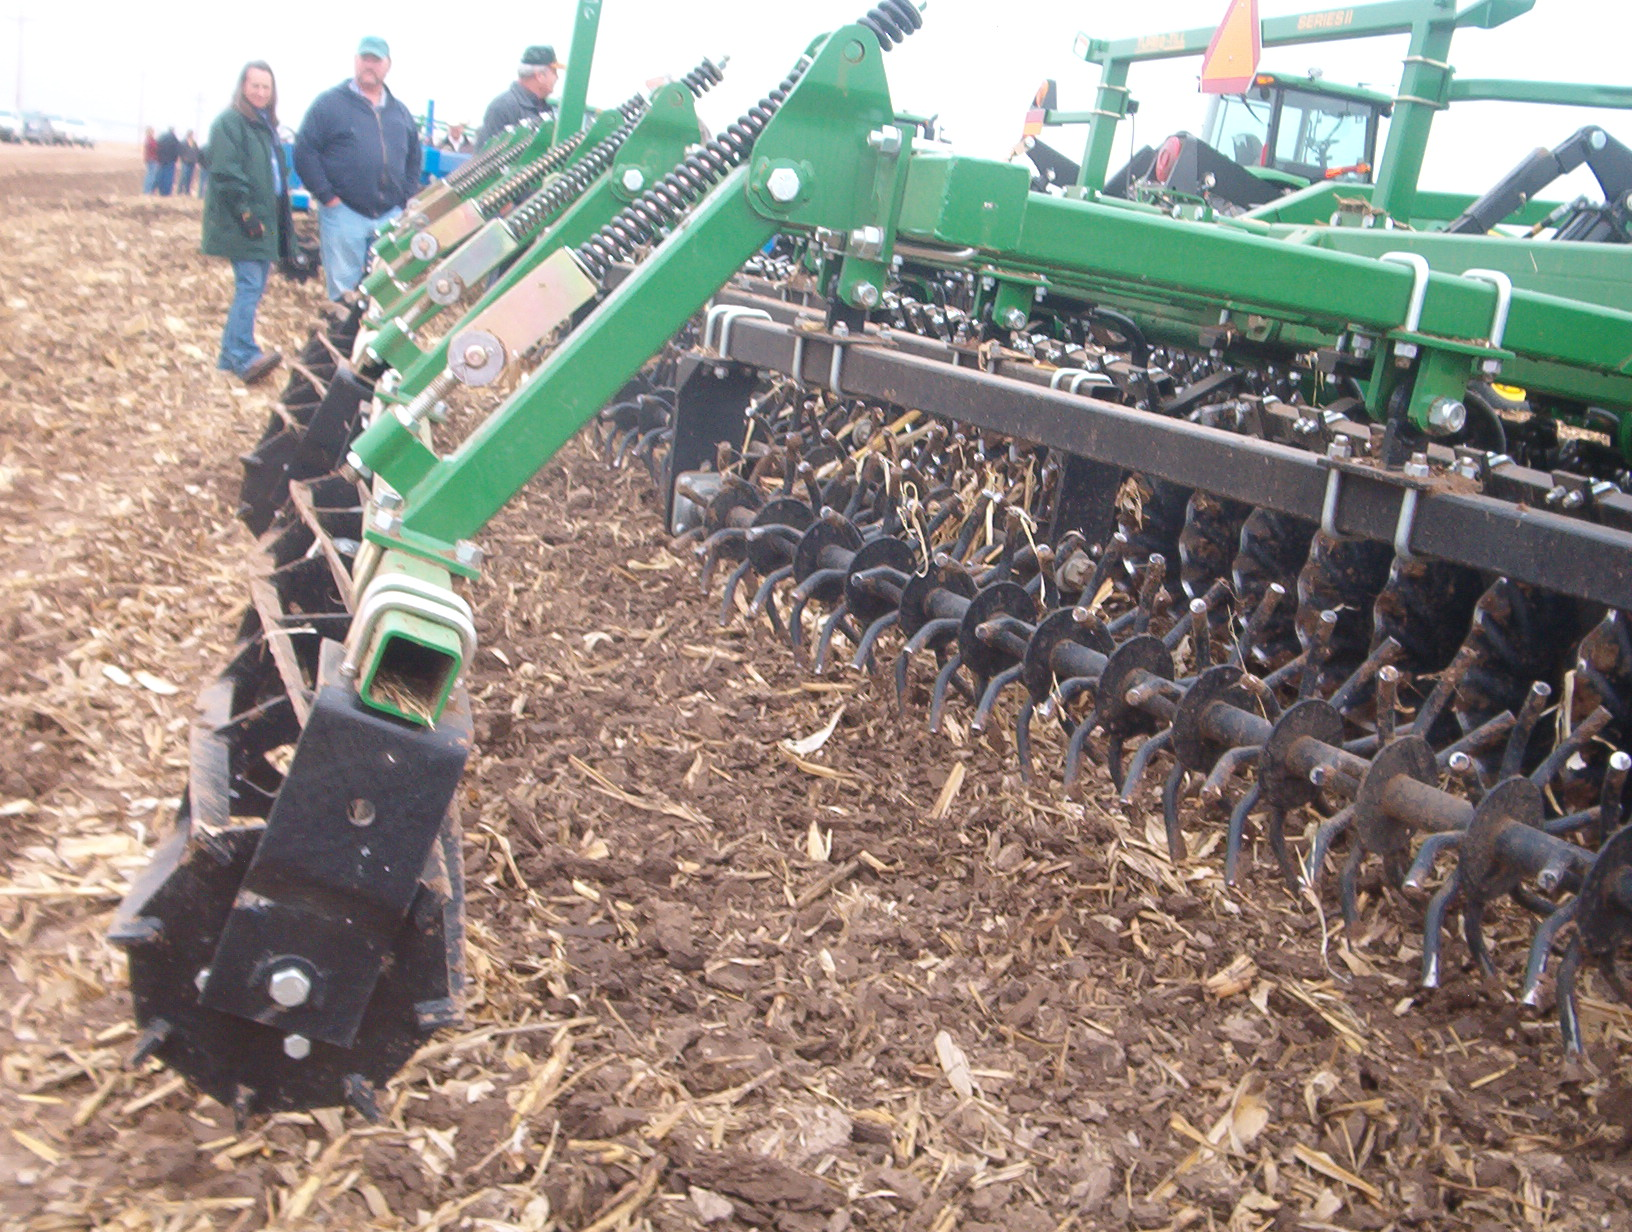 Rolling Basket Harrow : Index of winderosion nrcs downloads ag pictures